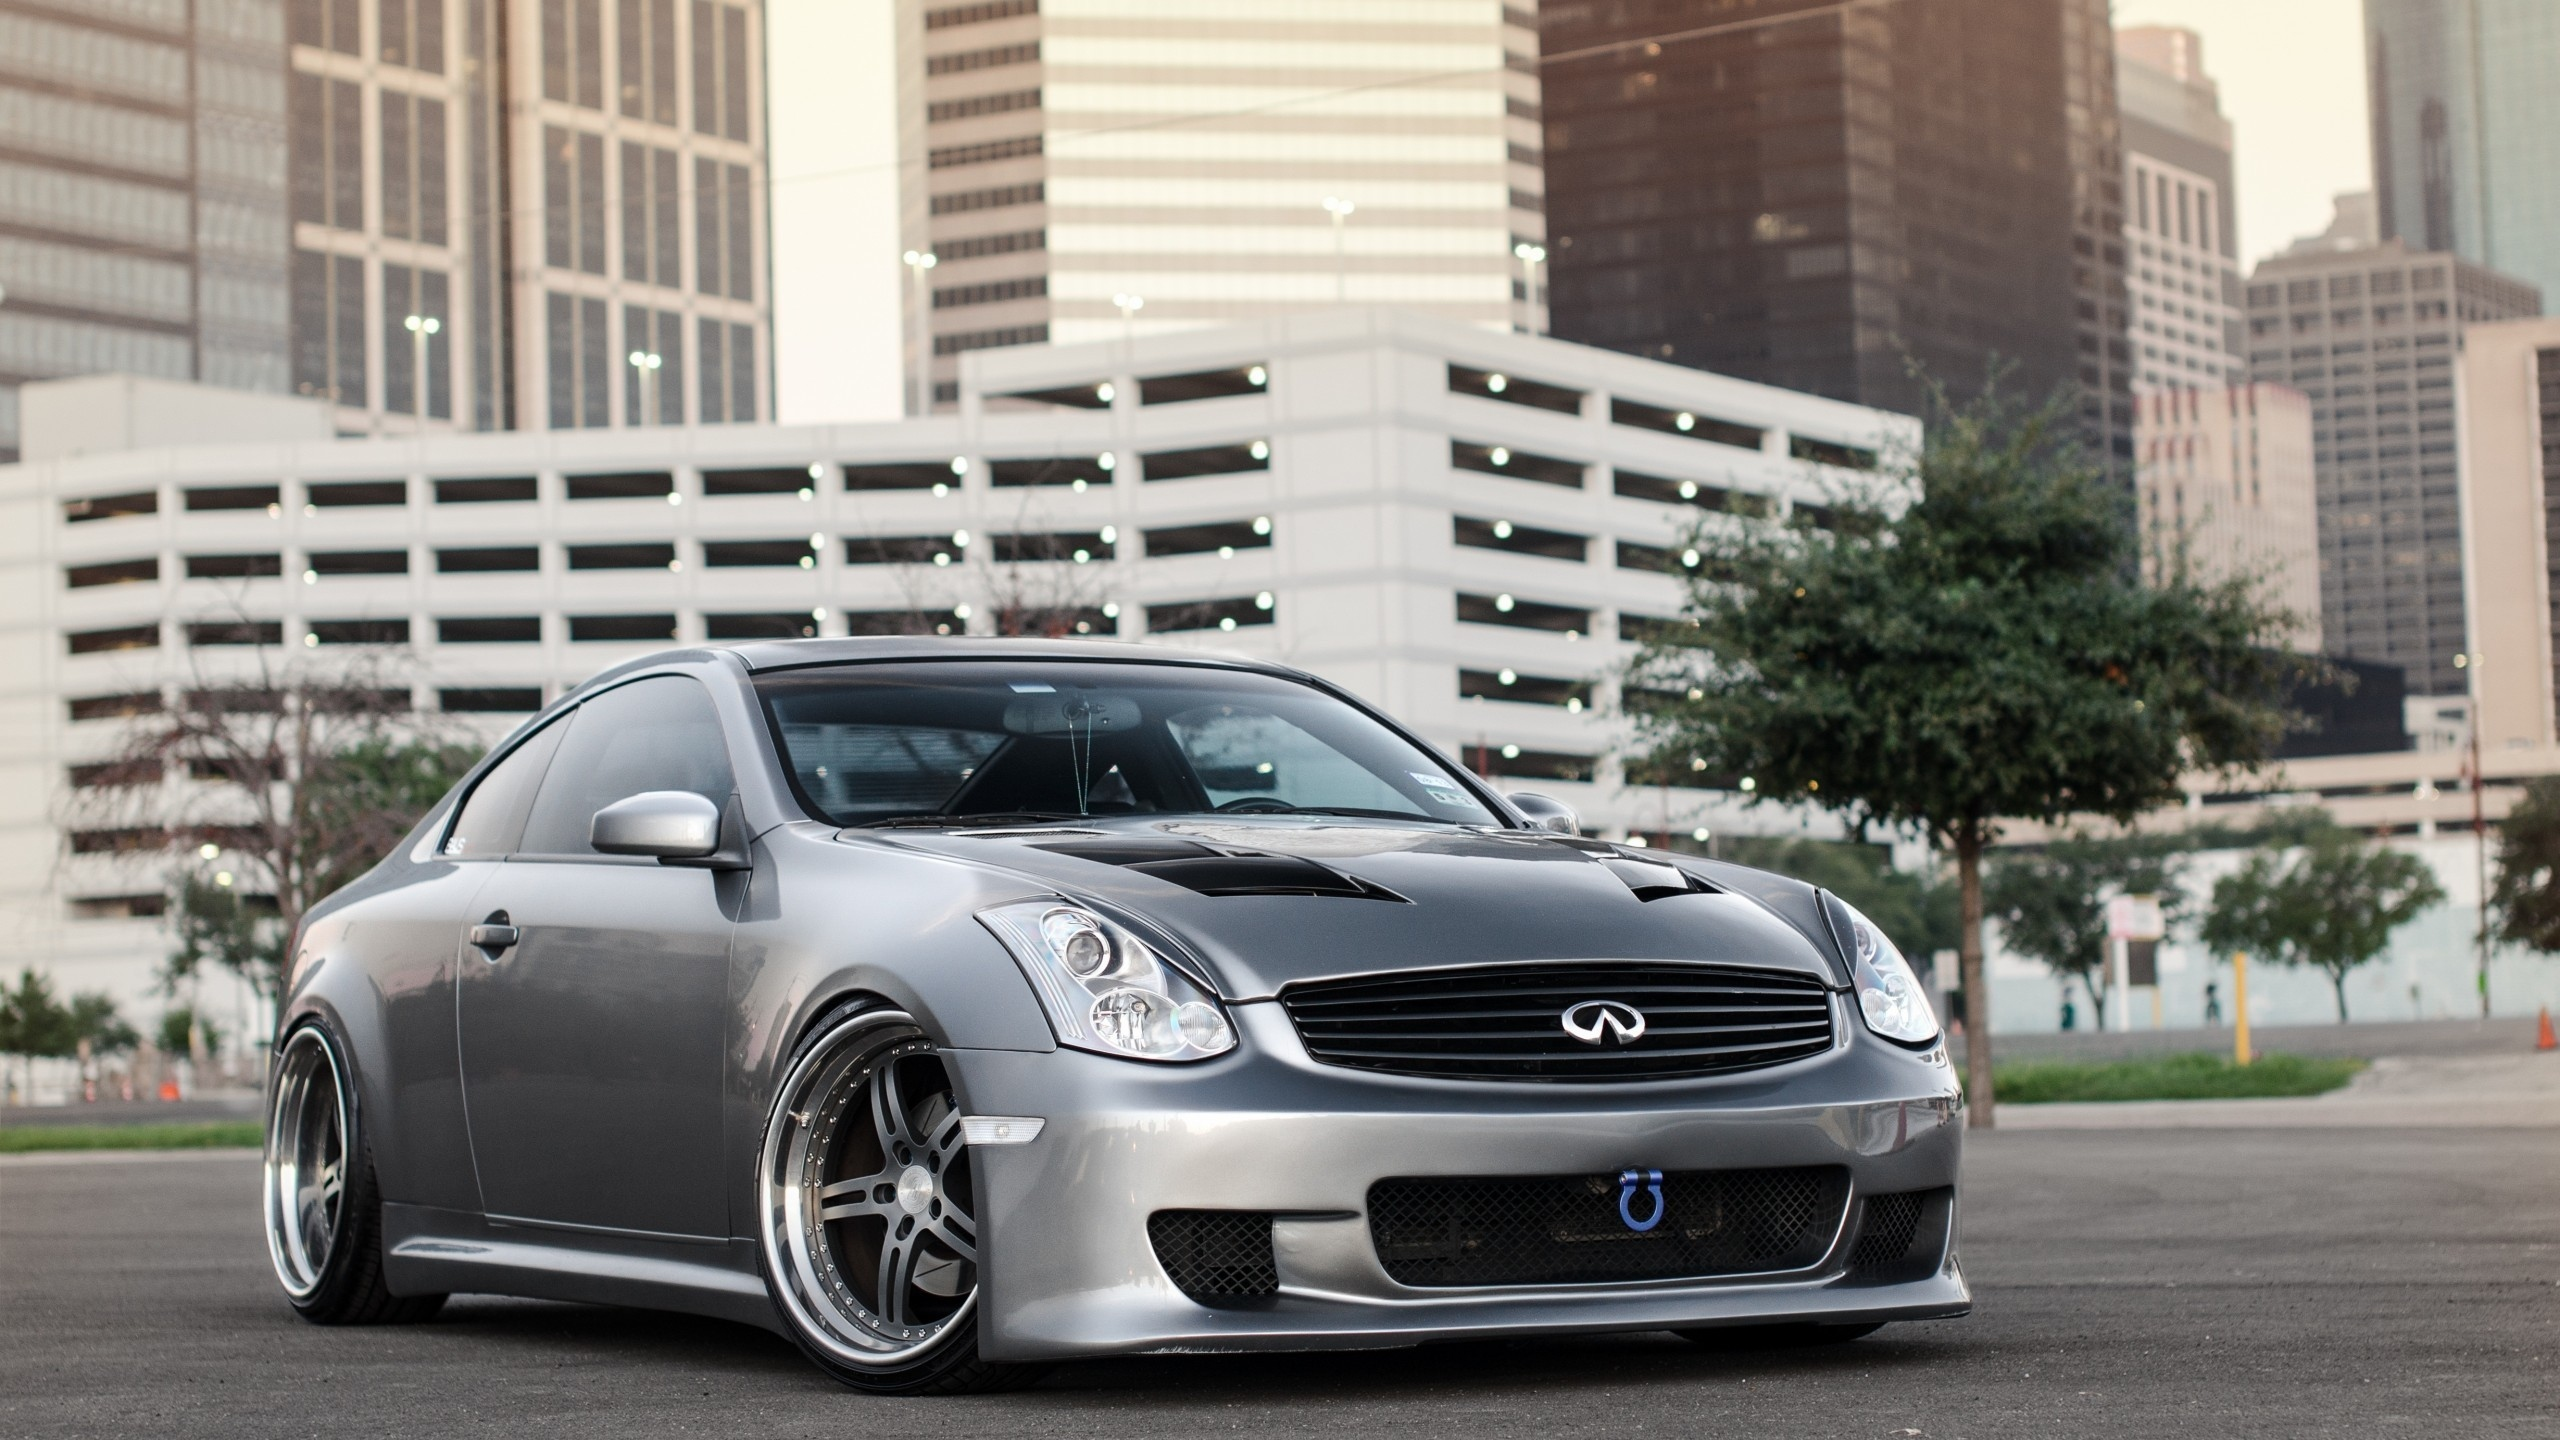 Delightful Infiniti G35 Wallpaper 46224